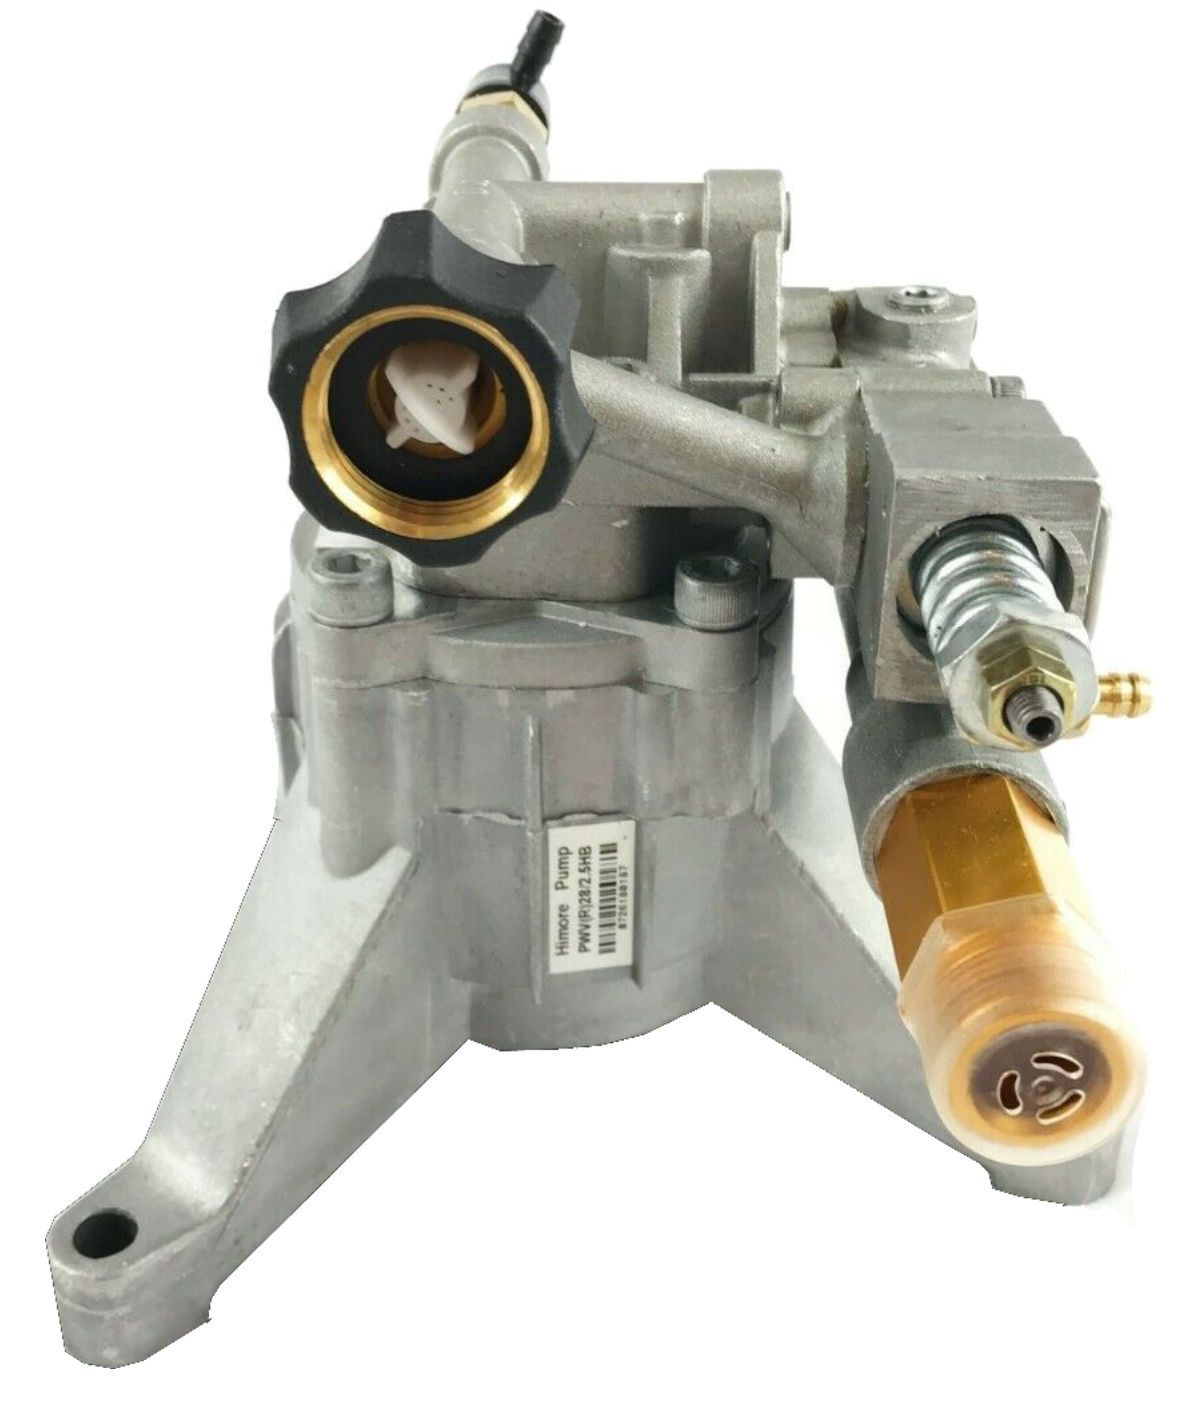 2700 PSI PRESSURE WASHER WATER PUMP Campbell Hausfeld PW2030V2LE - AE-Power